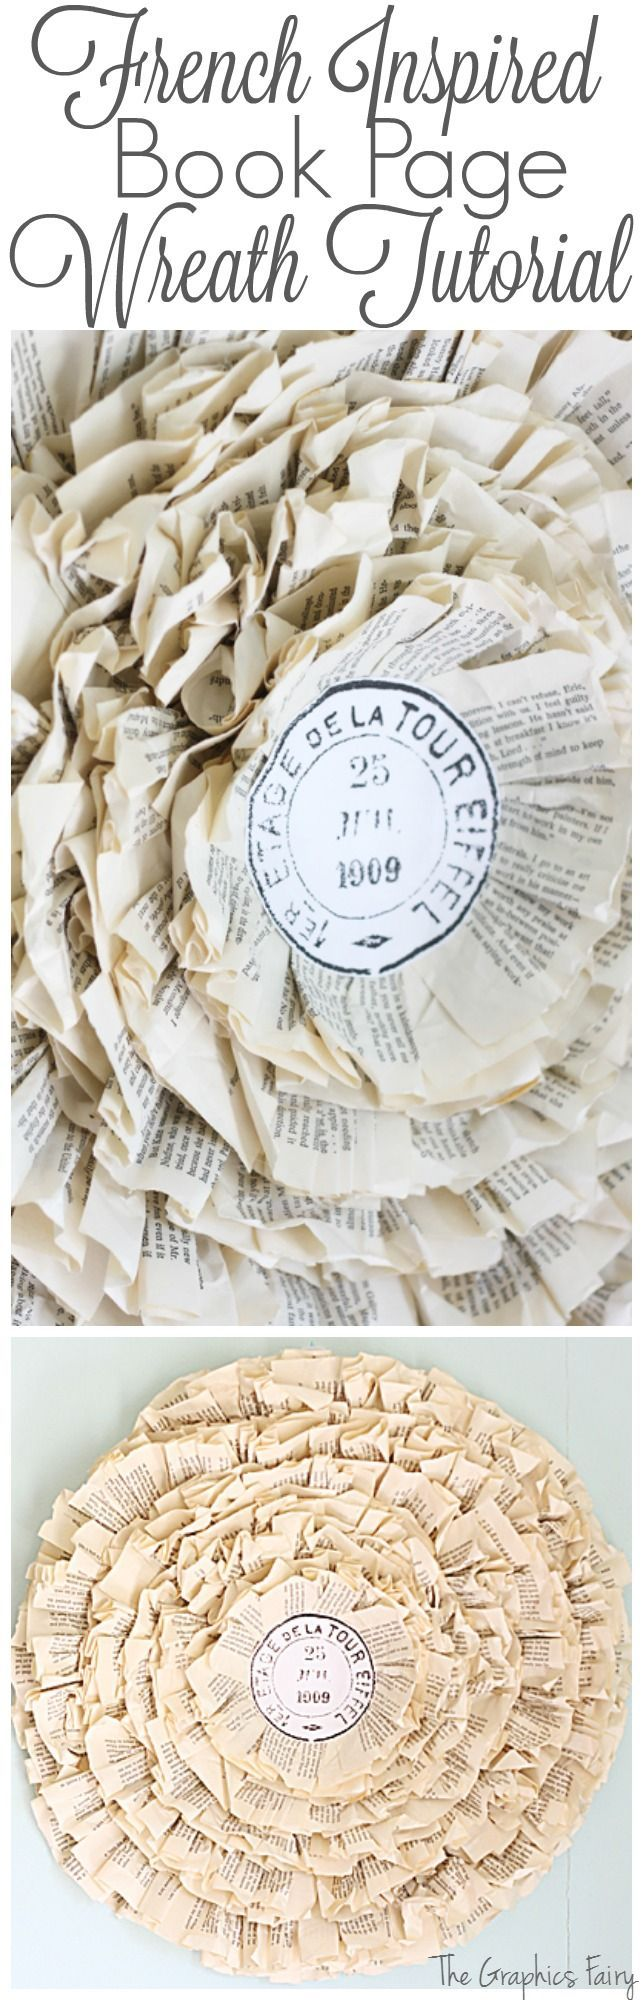 best 25 book page crafts ideas on pinterest recycled book crafts old book crafts and book flowers